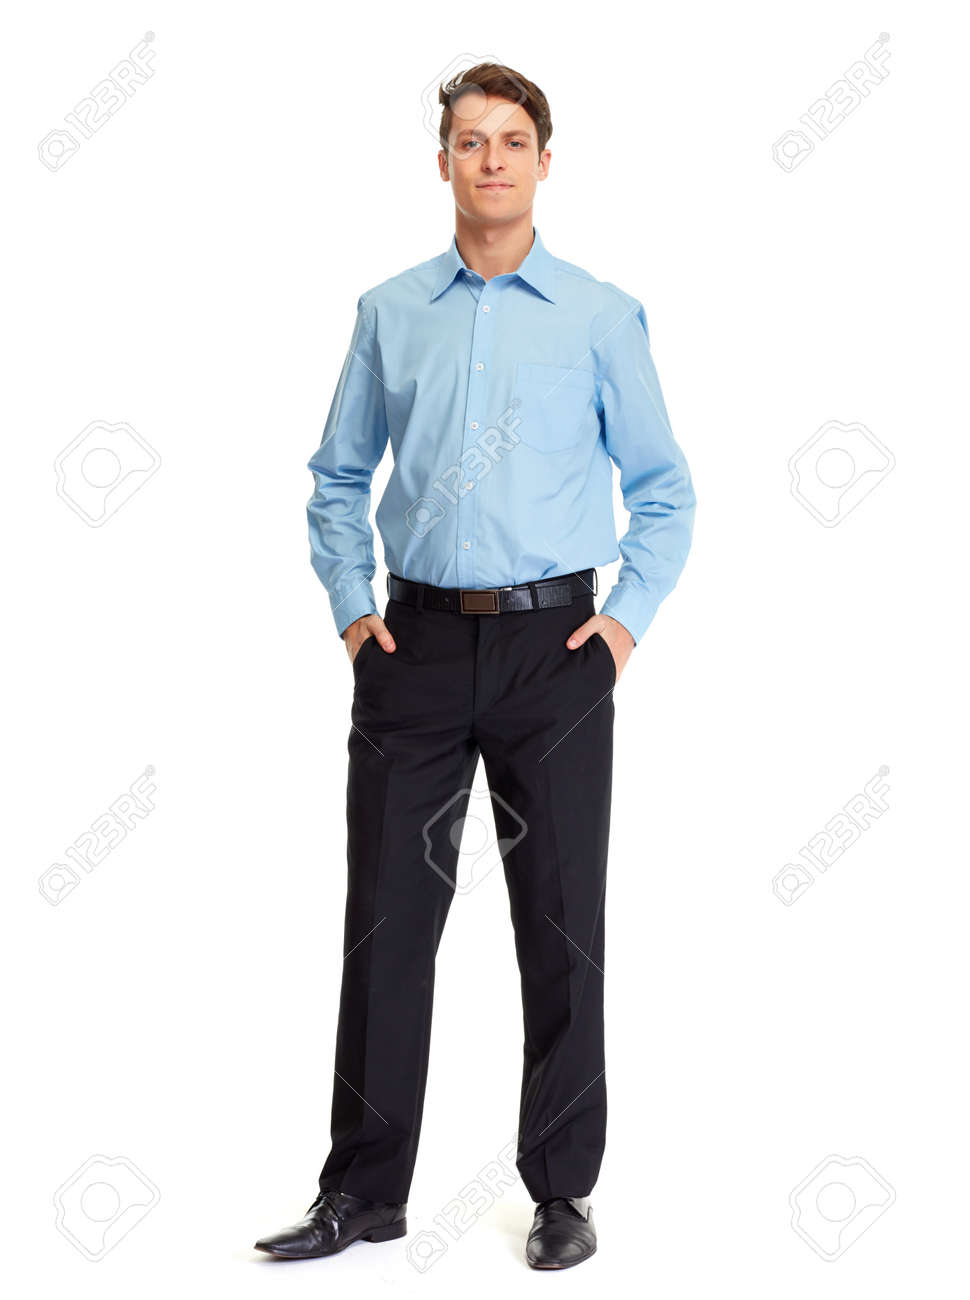 businessman stock photo picture and royalty free image image